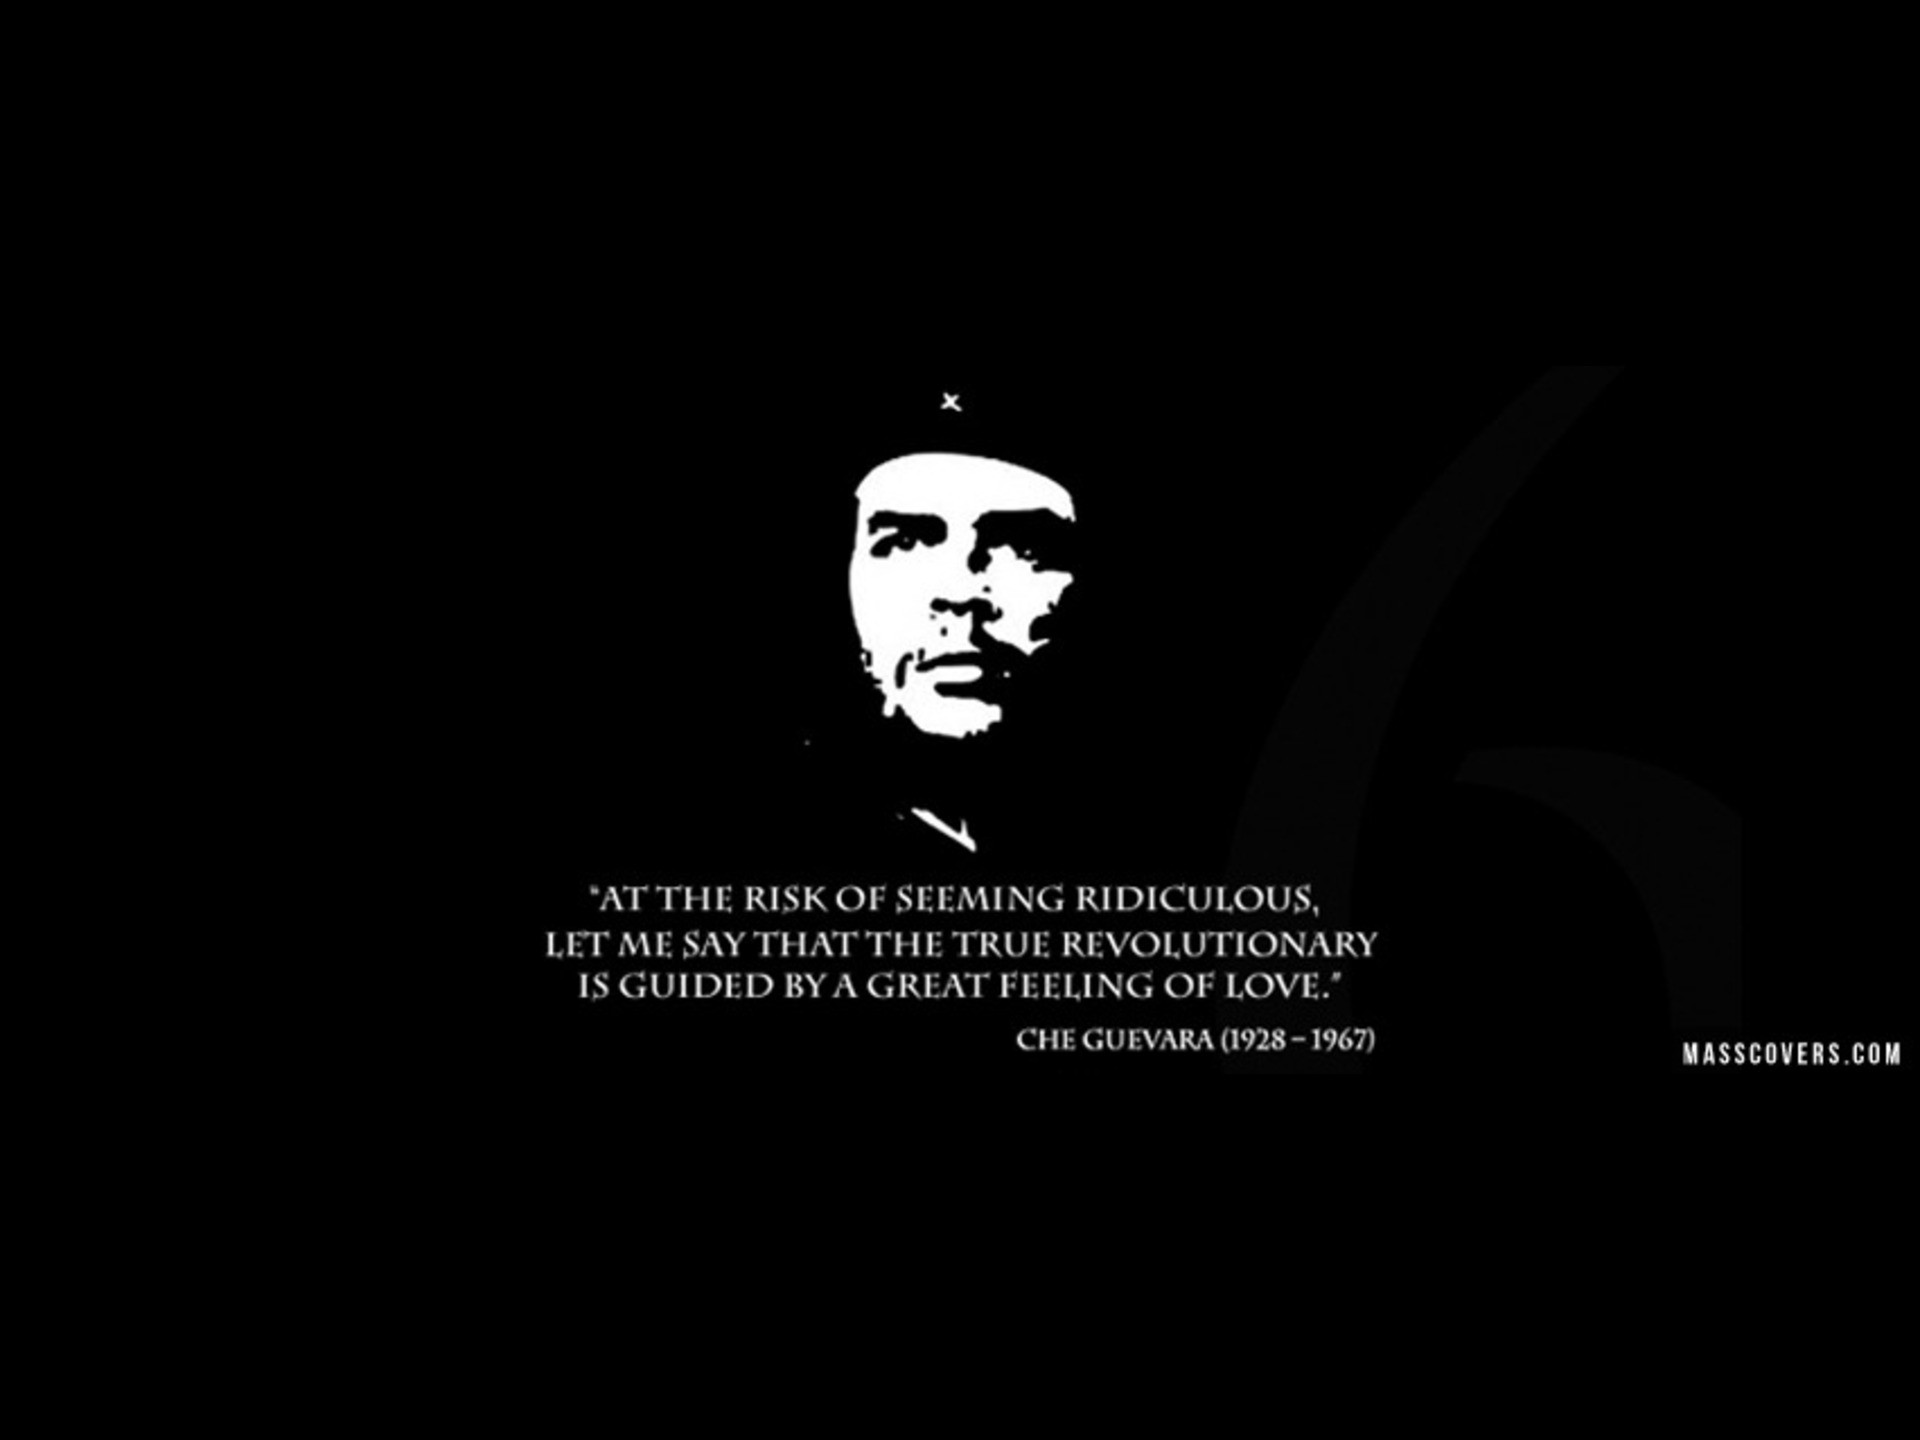 Che Guevara Quotes On Freedom Che guevara quotes